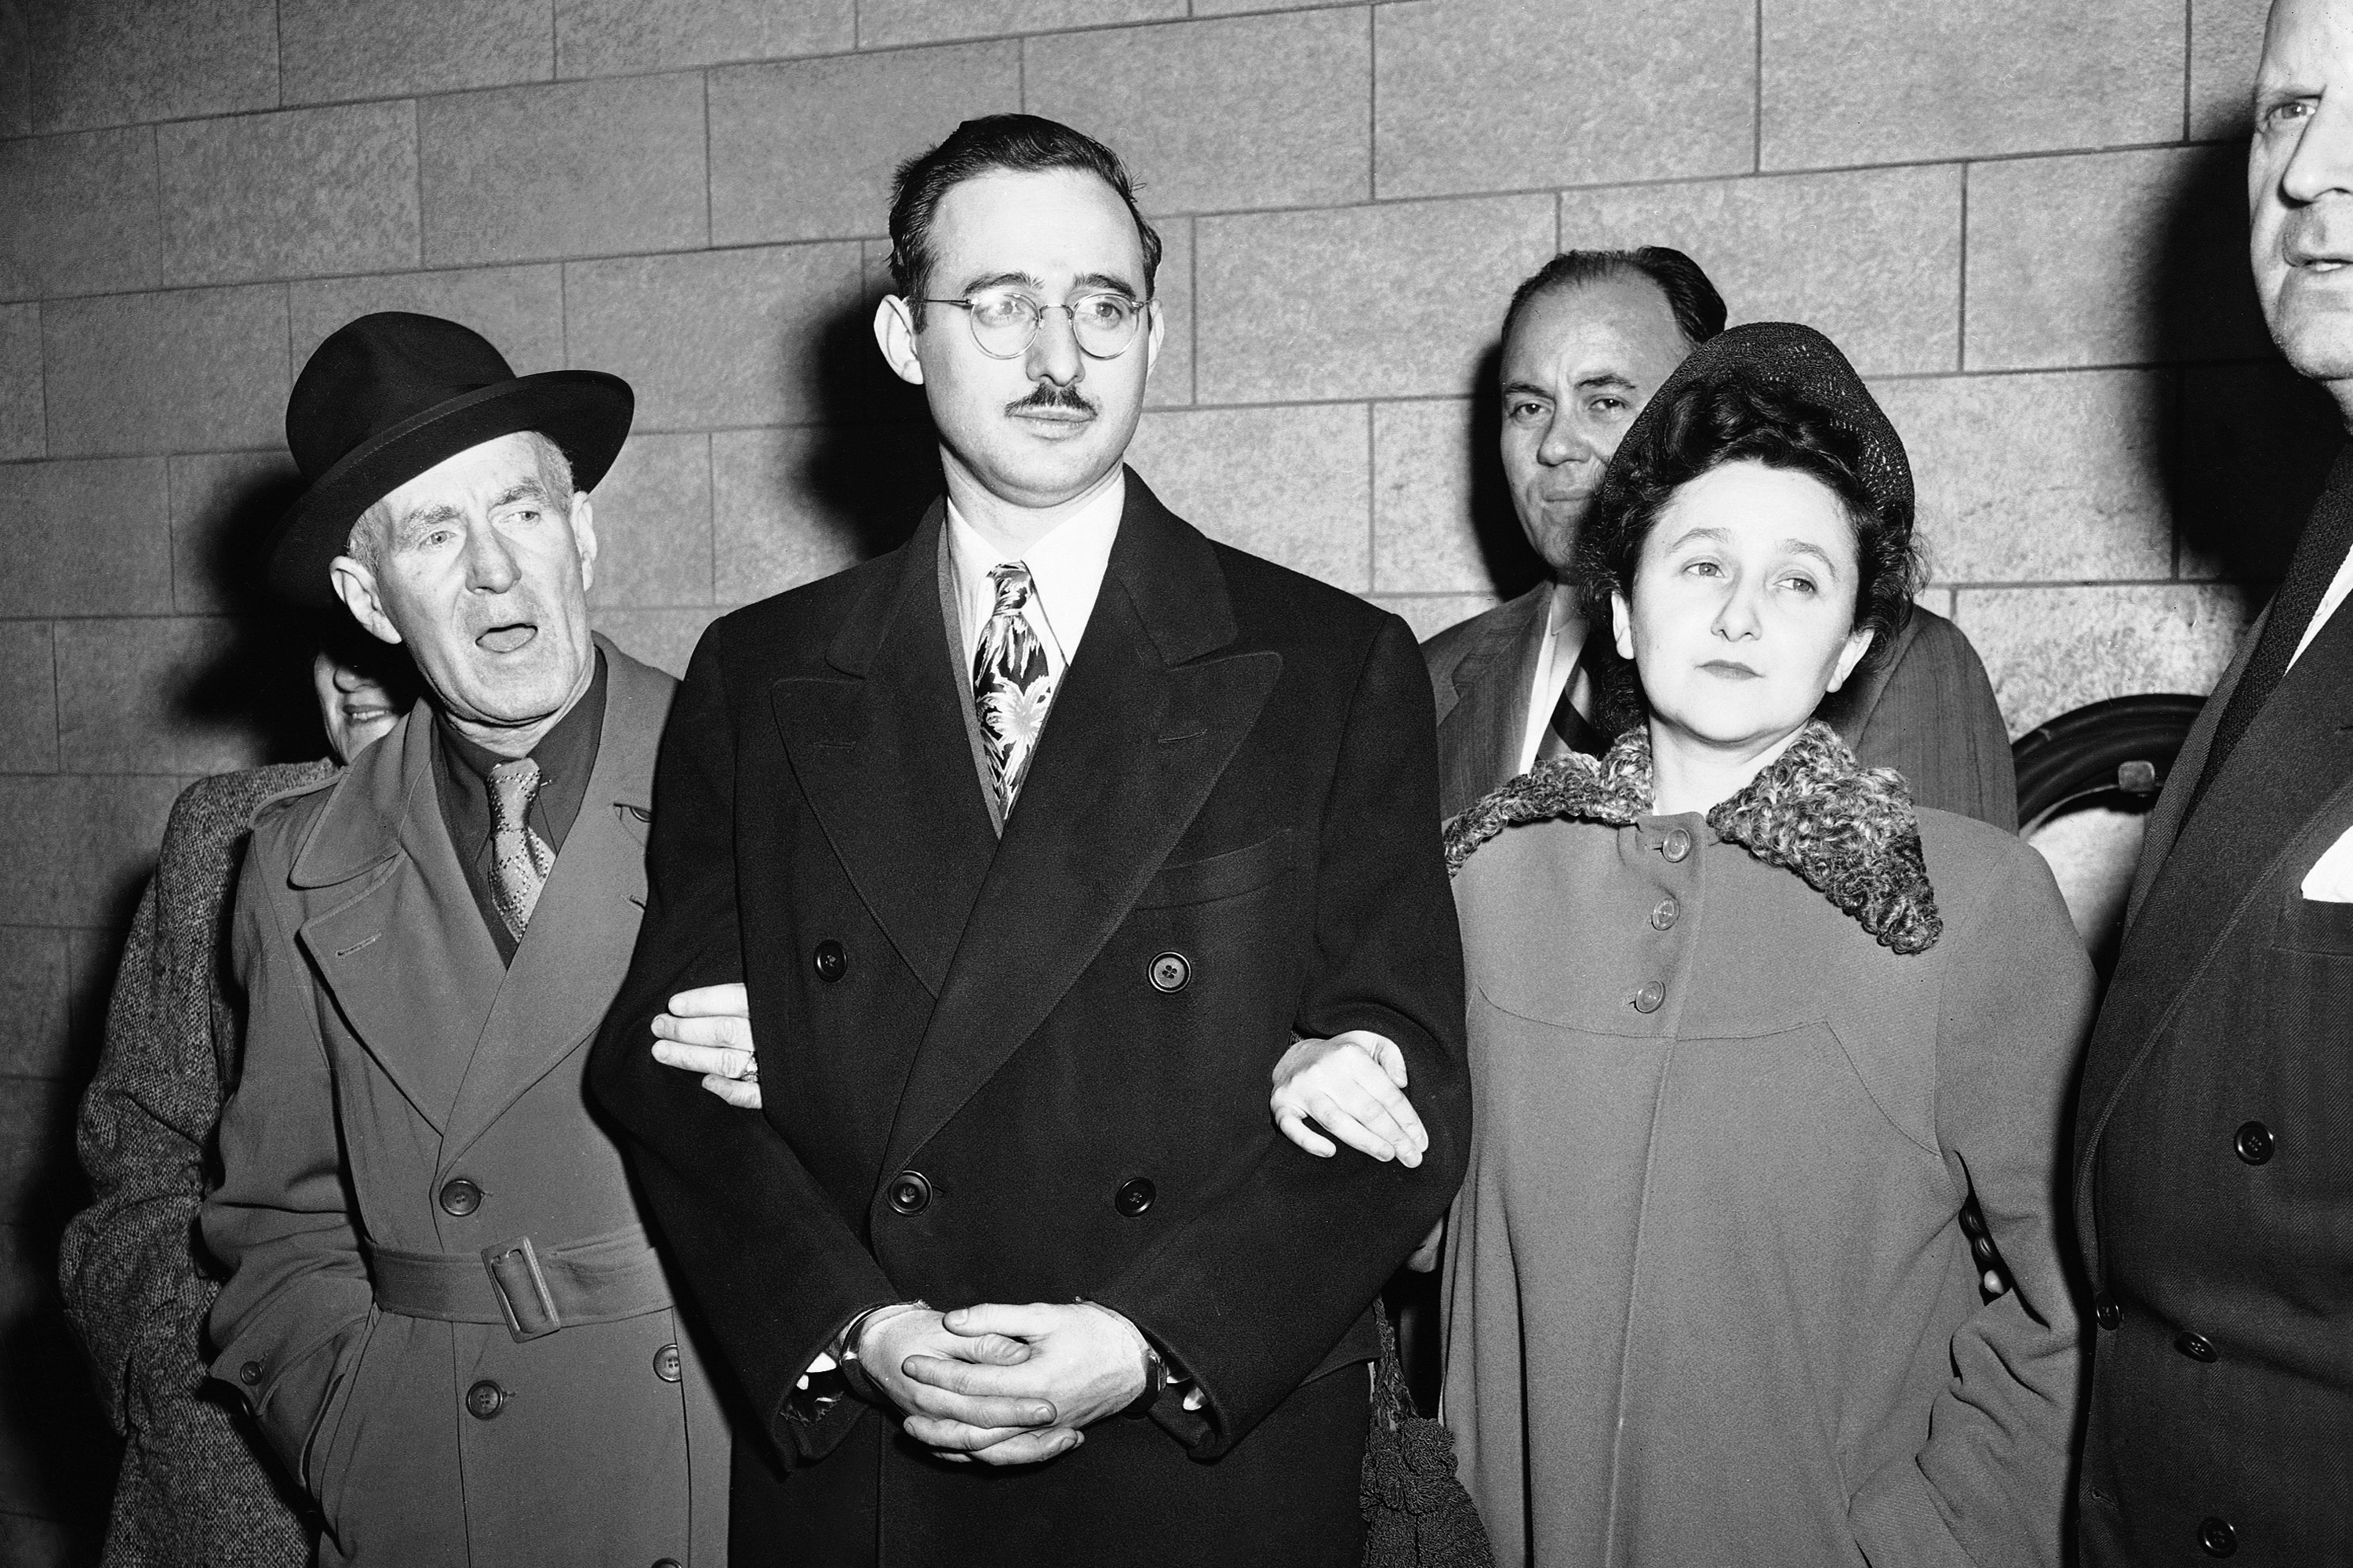 a history of the trial of julius and ethel rosenberg first prisoners executed for espionage Julius and ethel rosenberg were executed in 1953 after their conviction for violating the espionage act the us was the world's only nuclear power from the trinity test detonation in 1945, until the soviet union detonated its own weapon in 1949.